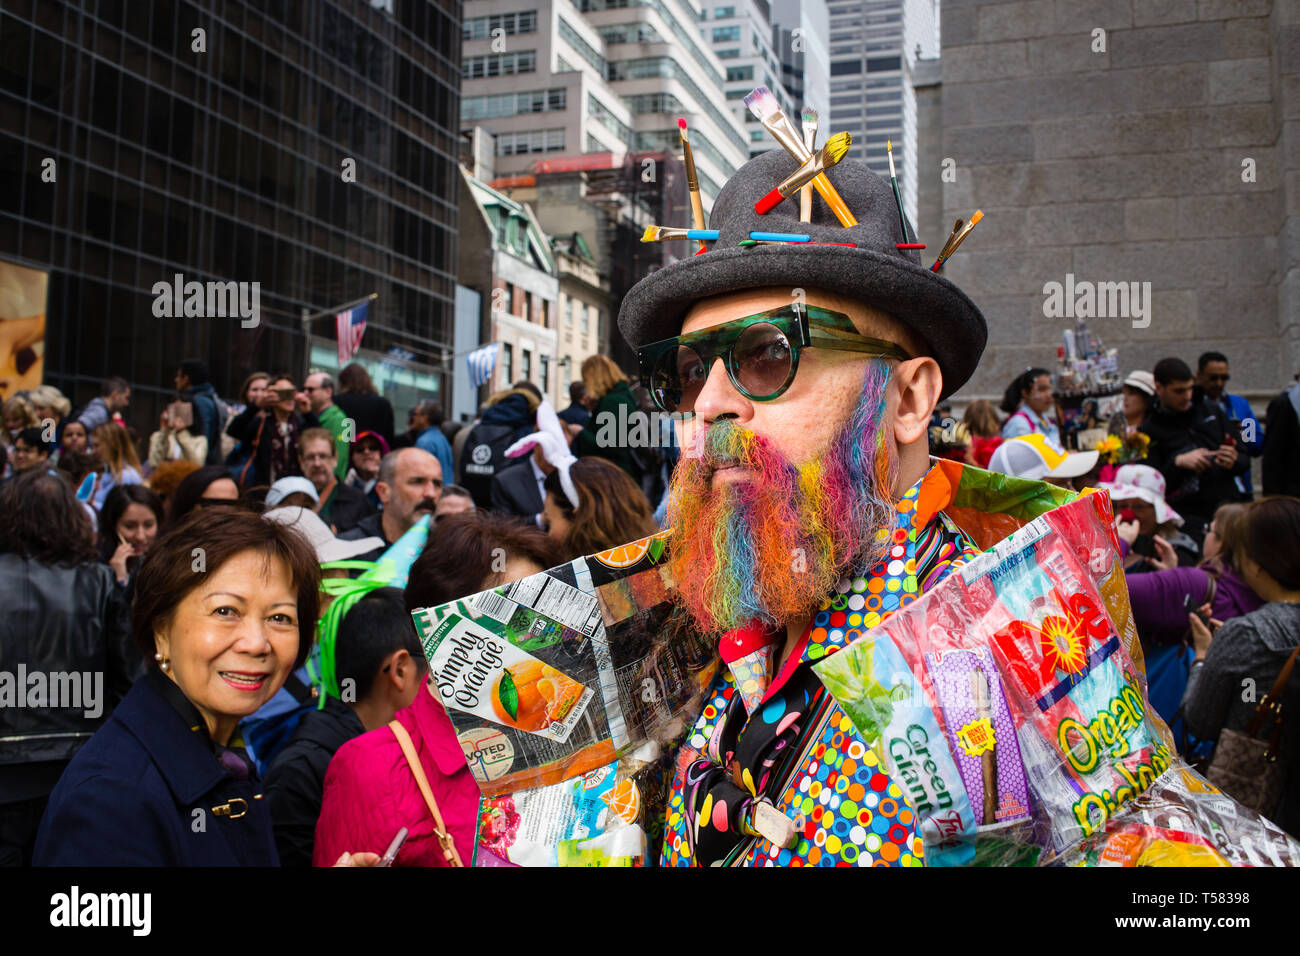 New York, NY - 21 April 2019. A man with a hat bristling with artist's paintbrushes at the Easter Bonnet Parade and Festival on New York's Fifth Avenu - Stock Image